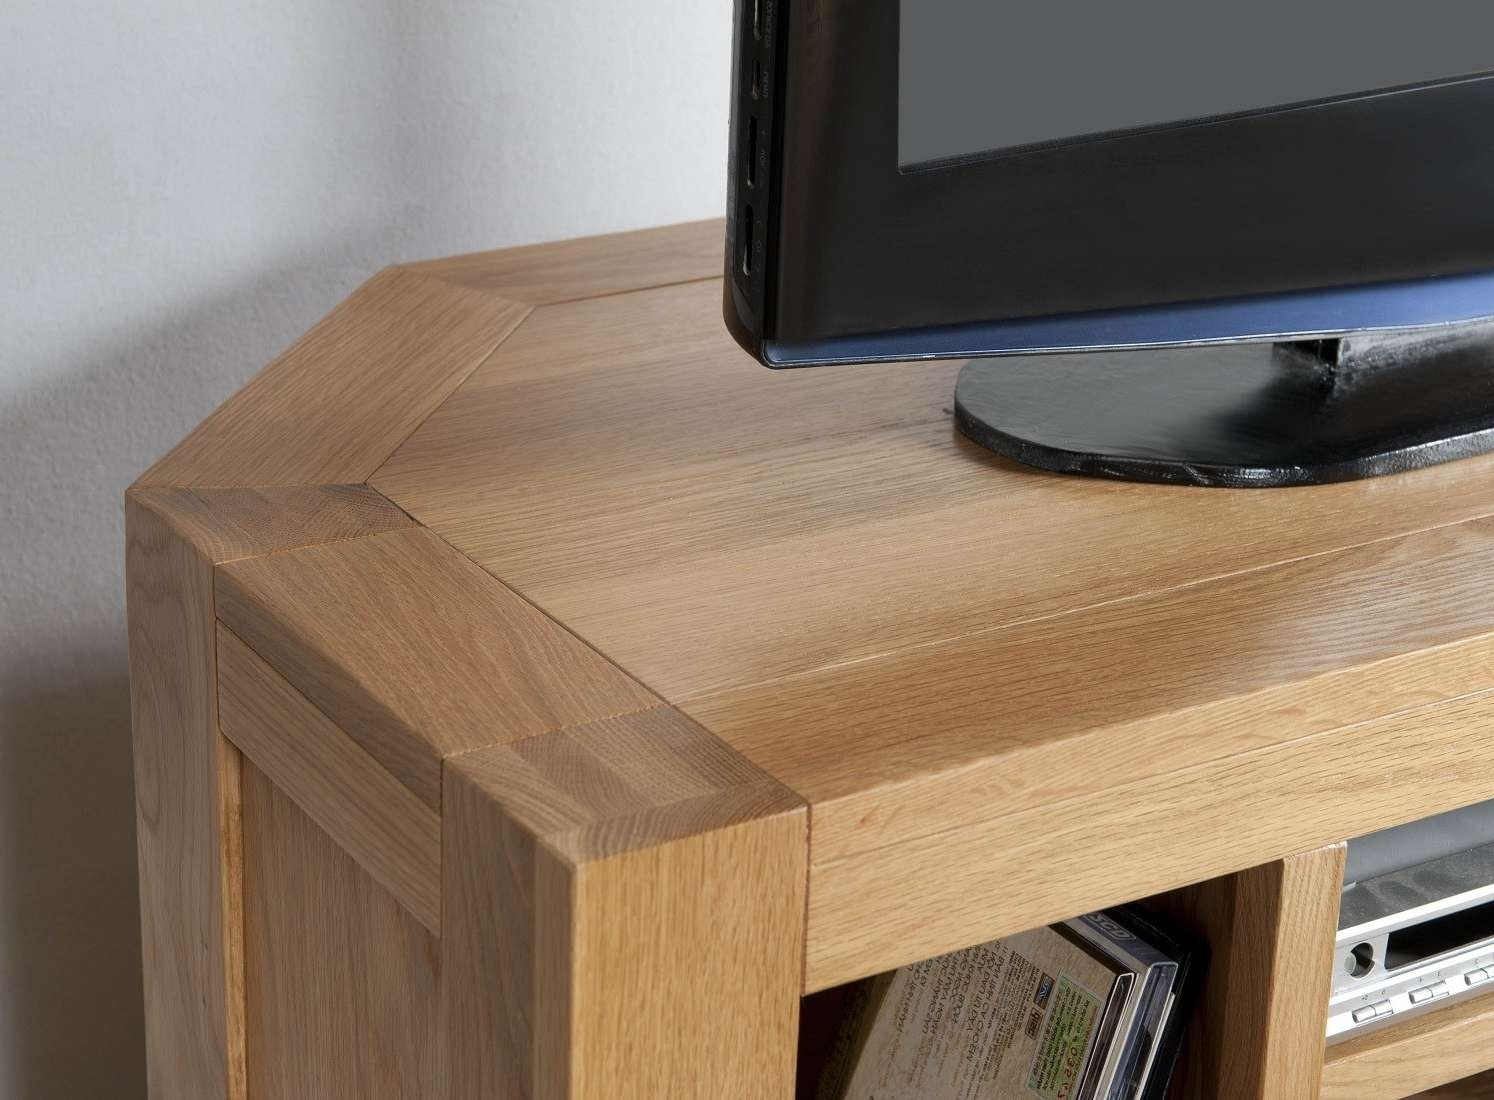 Aylesbury Contemporary Light Oak Corner Tv Unit | Oak Furniture Uk Pertaining To Light Oak Corner Tv Stands (View 1 of 20)